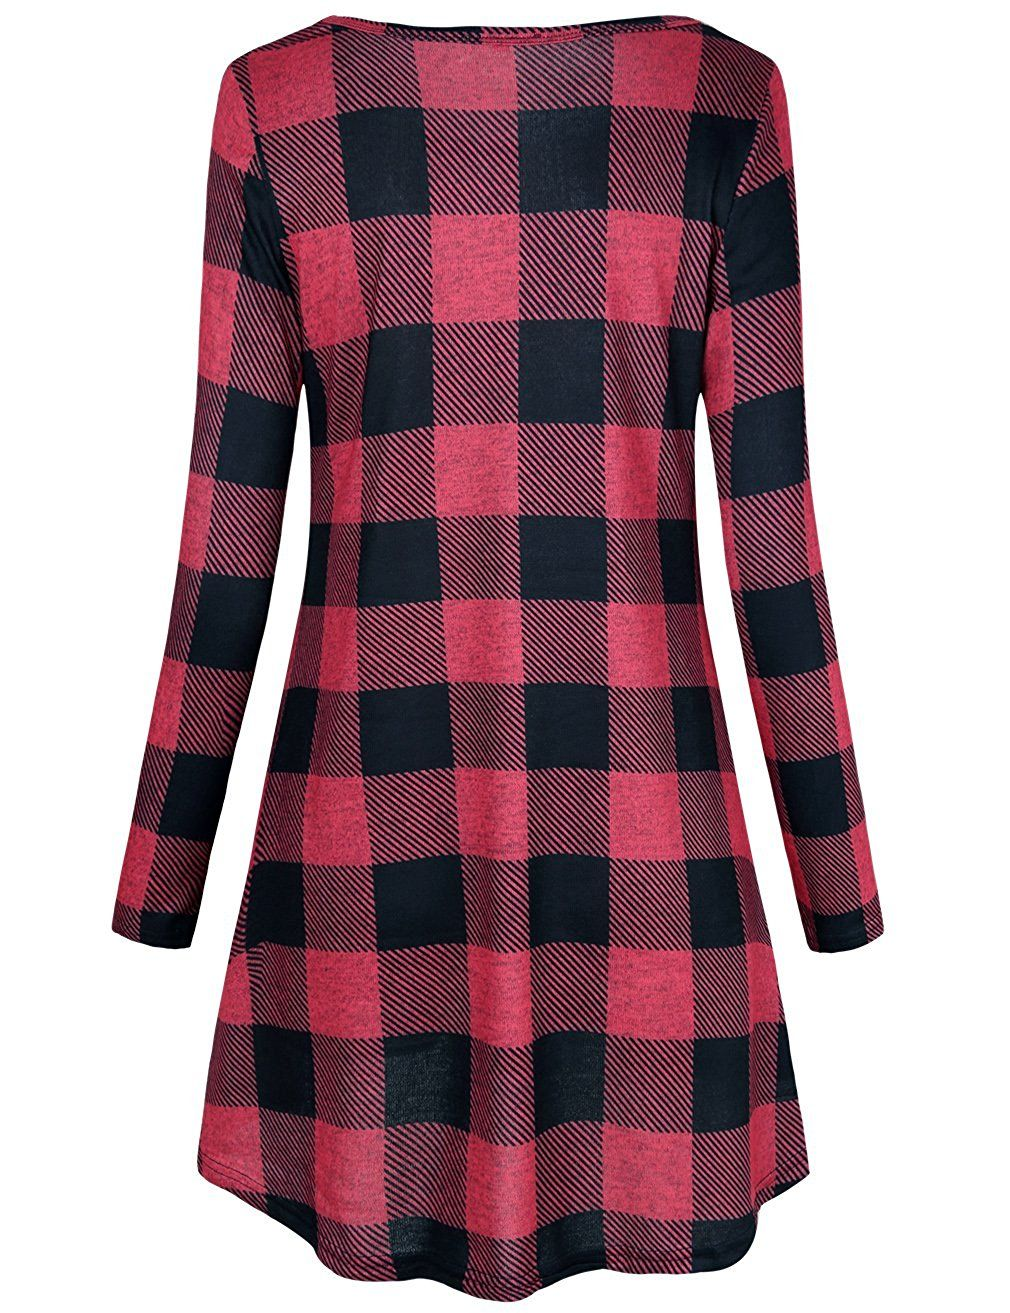 24539343b FANSIC Women Casual Long Sleeve Loose Checkered Plaid Swing Tunic T-Shirt  Dress With Pocket